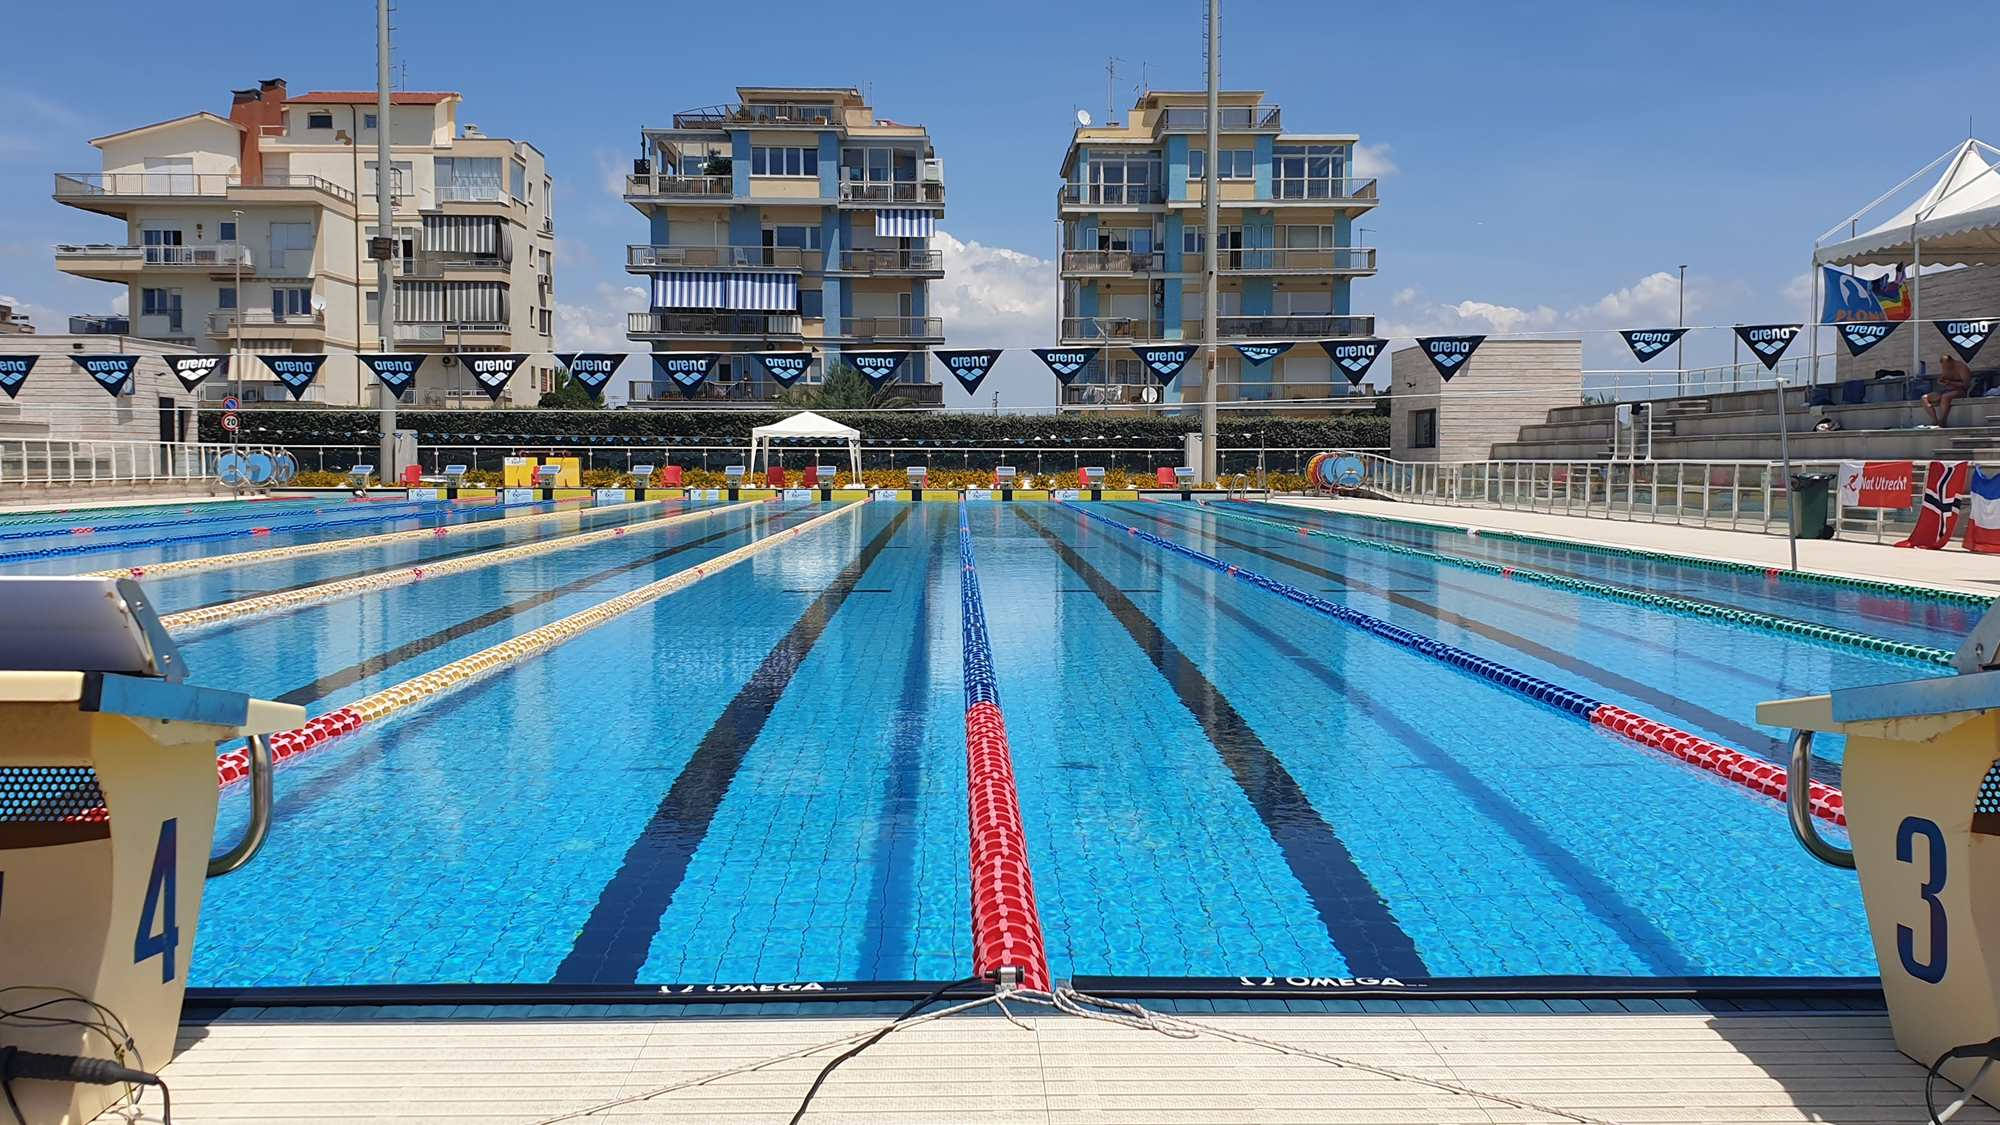 20190711_130341 Rome Outdoor 50m pool.jpg